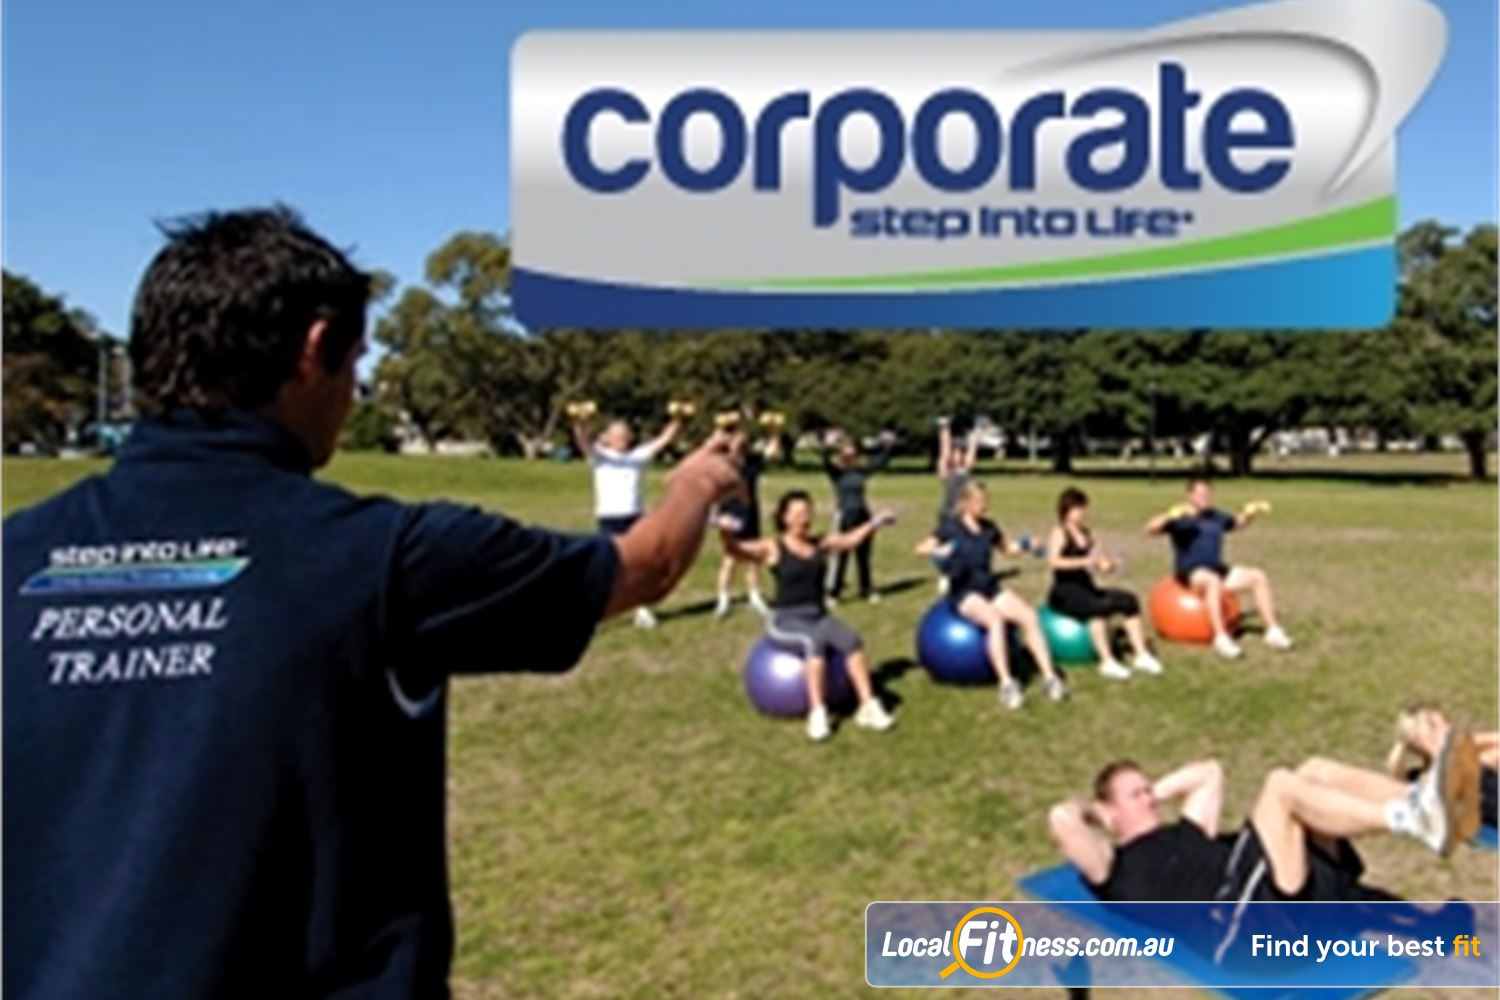 Step into Life Near Yeerongpilly We provide Graceville corporate fitness programs to help businesses stay healthy.